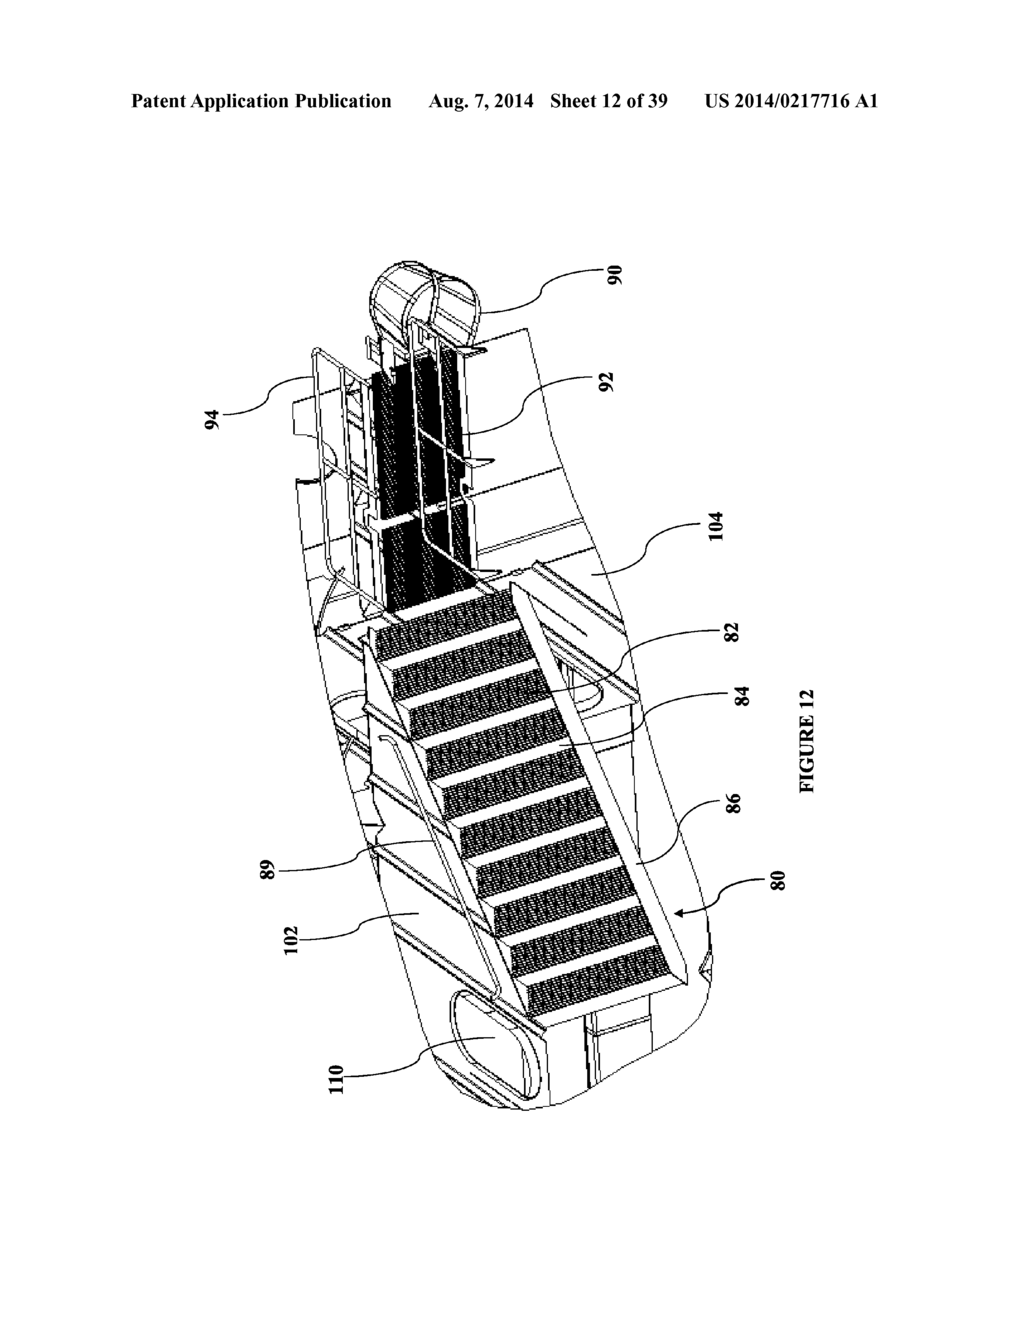 hight resolution of baffled fluid tank with stairway access diagram schematic and image 13